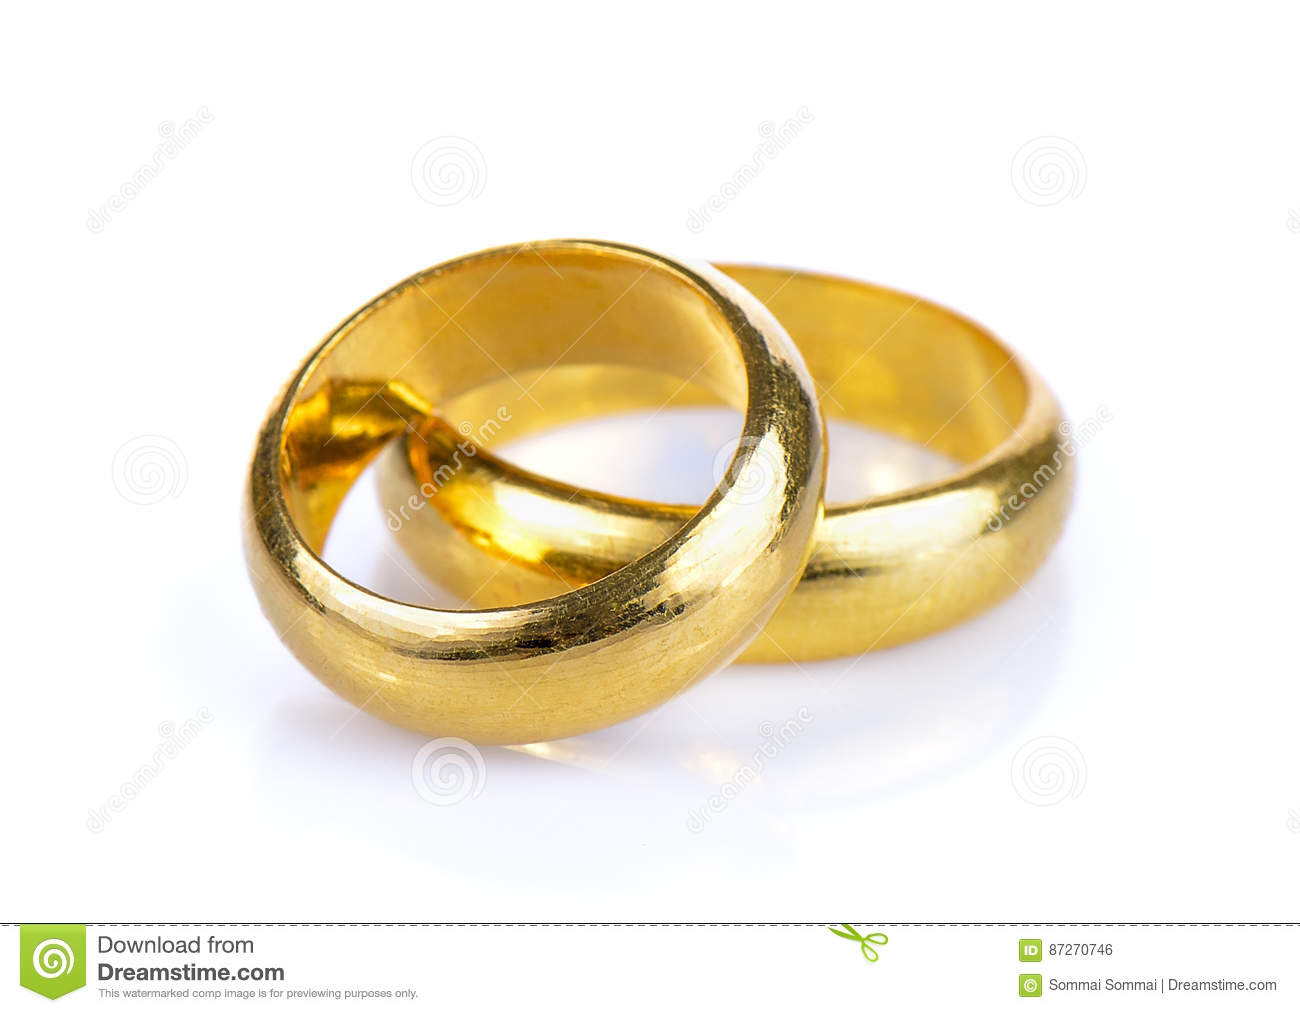 Gold Ring Stock Photos - Royalty Free Images